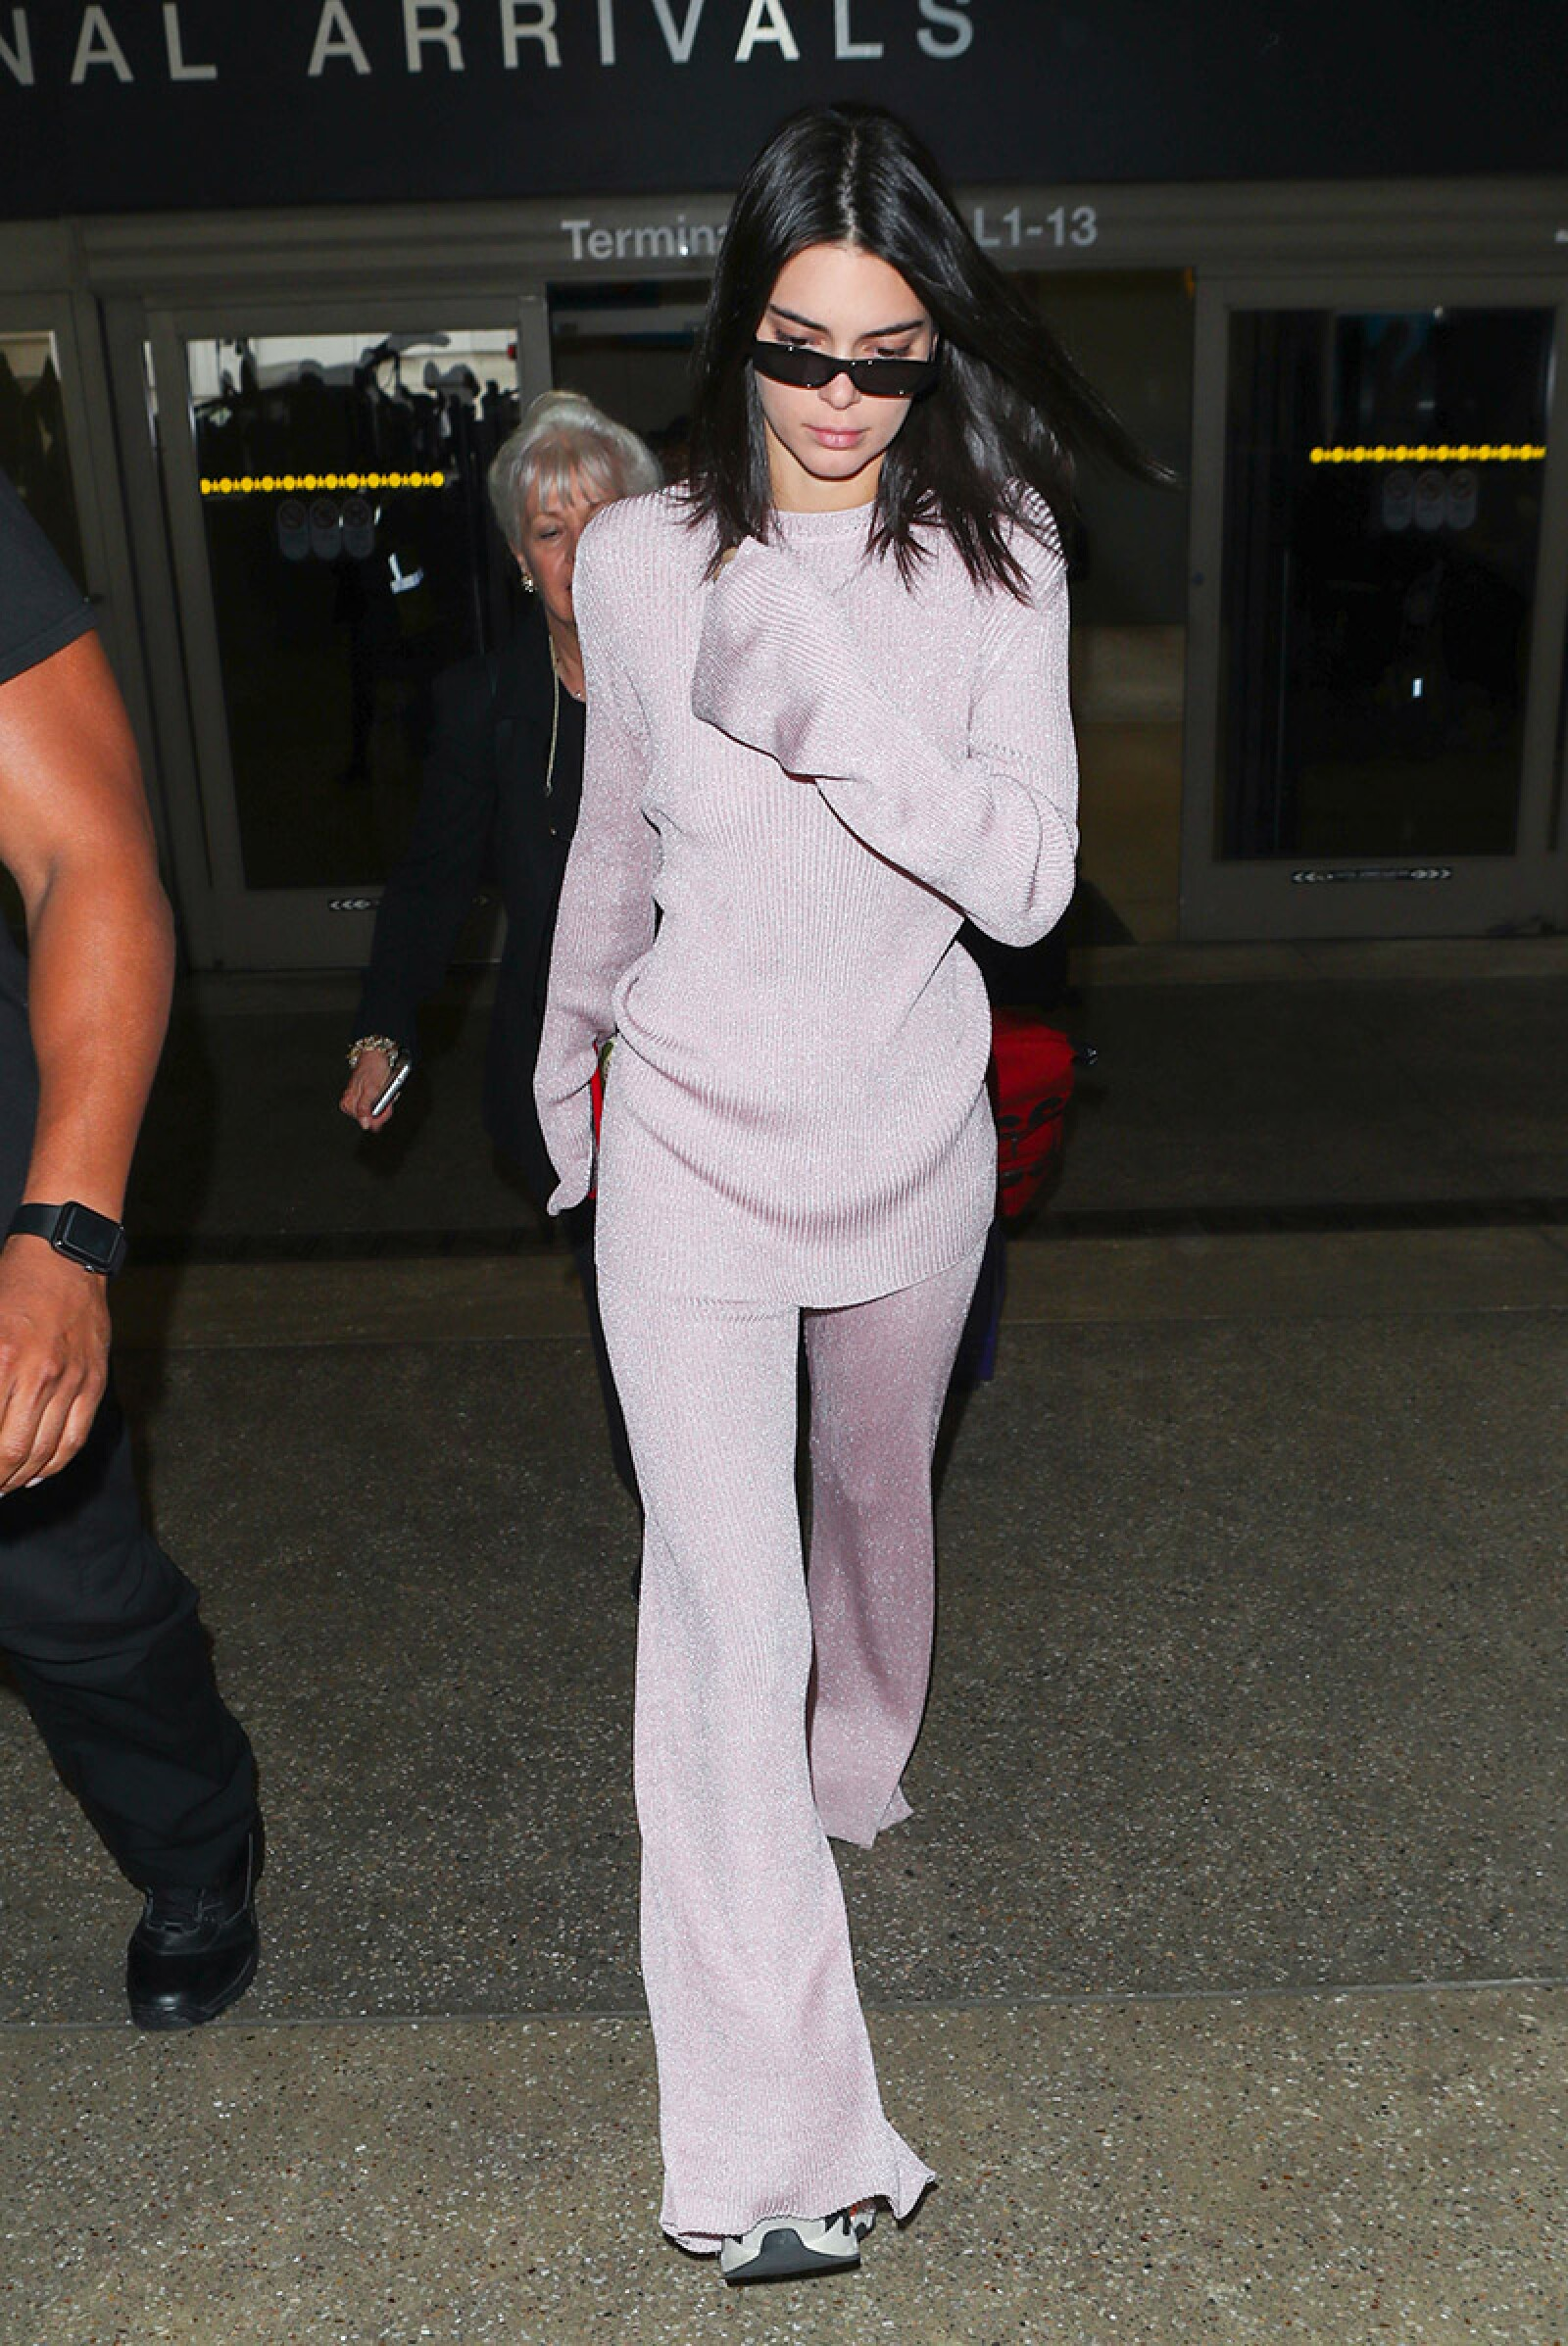 Kendall Jenner at LAX International Airport, Los Angeles, USA - 28 Sep 2018